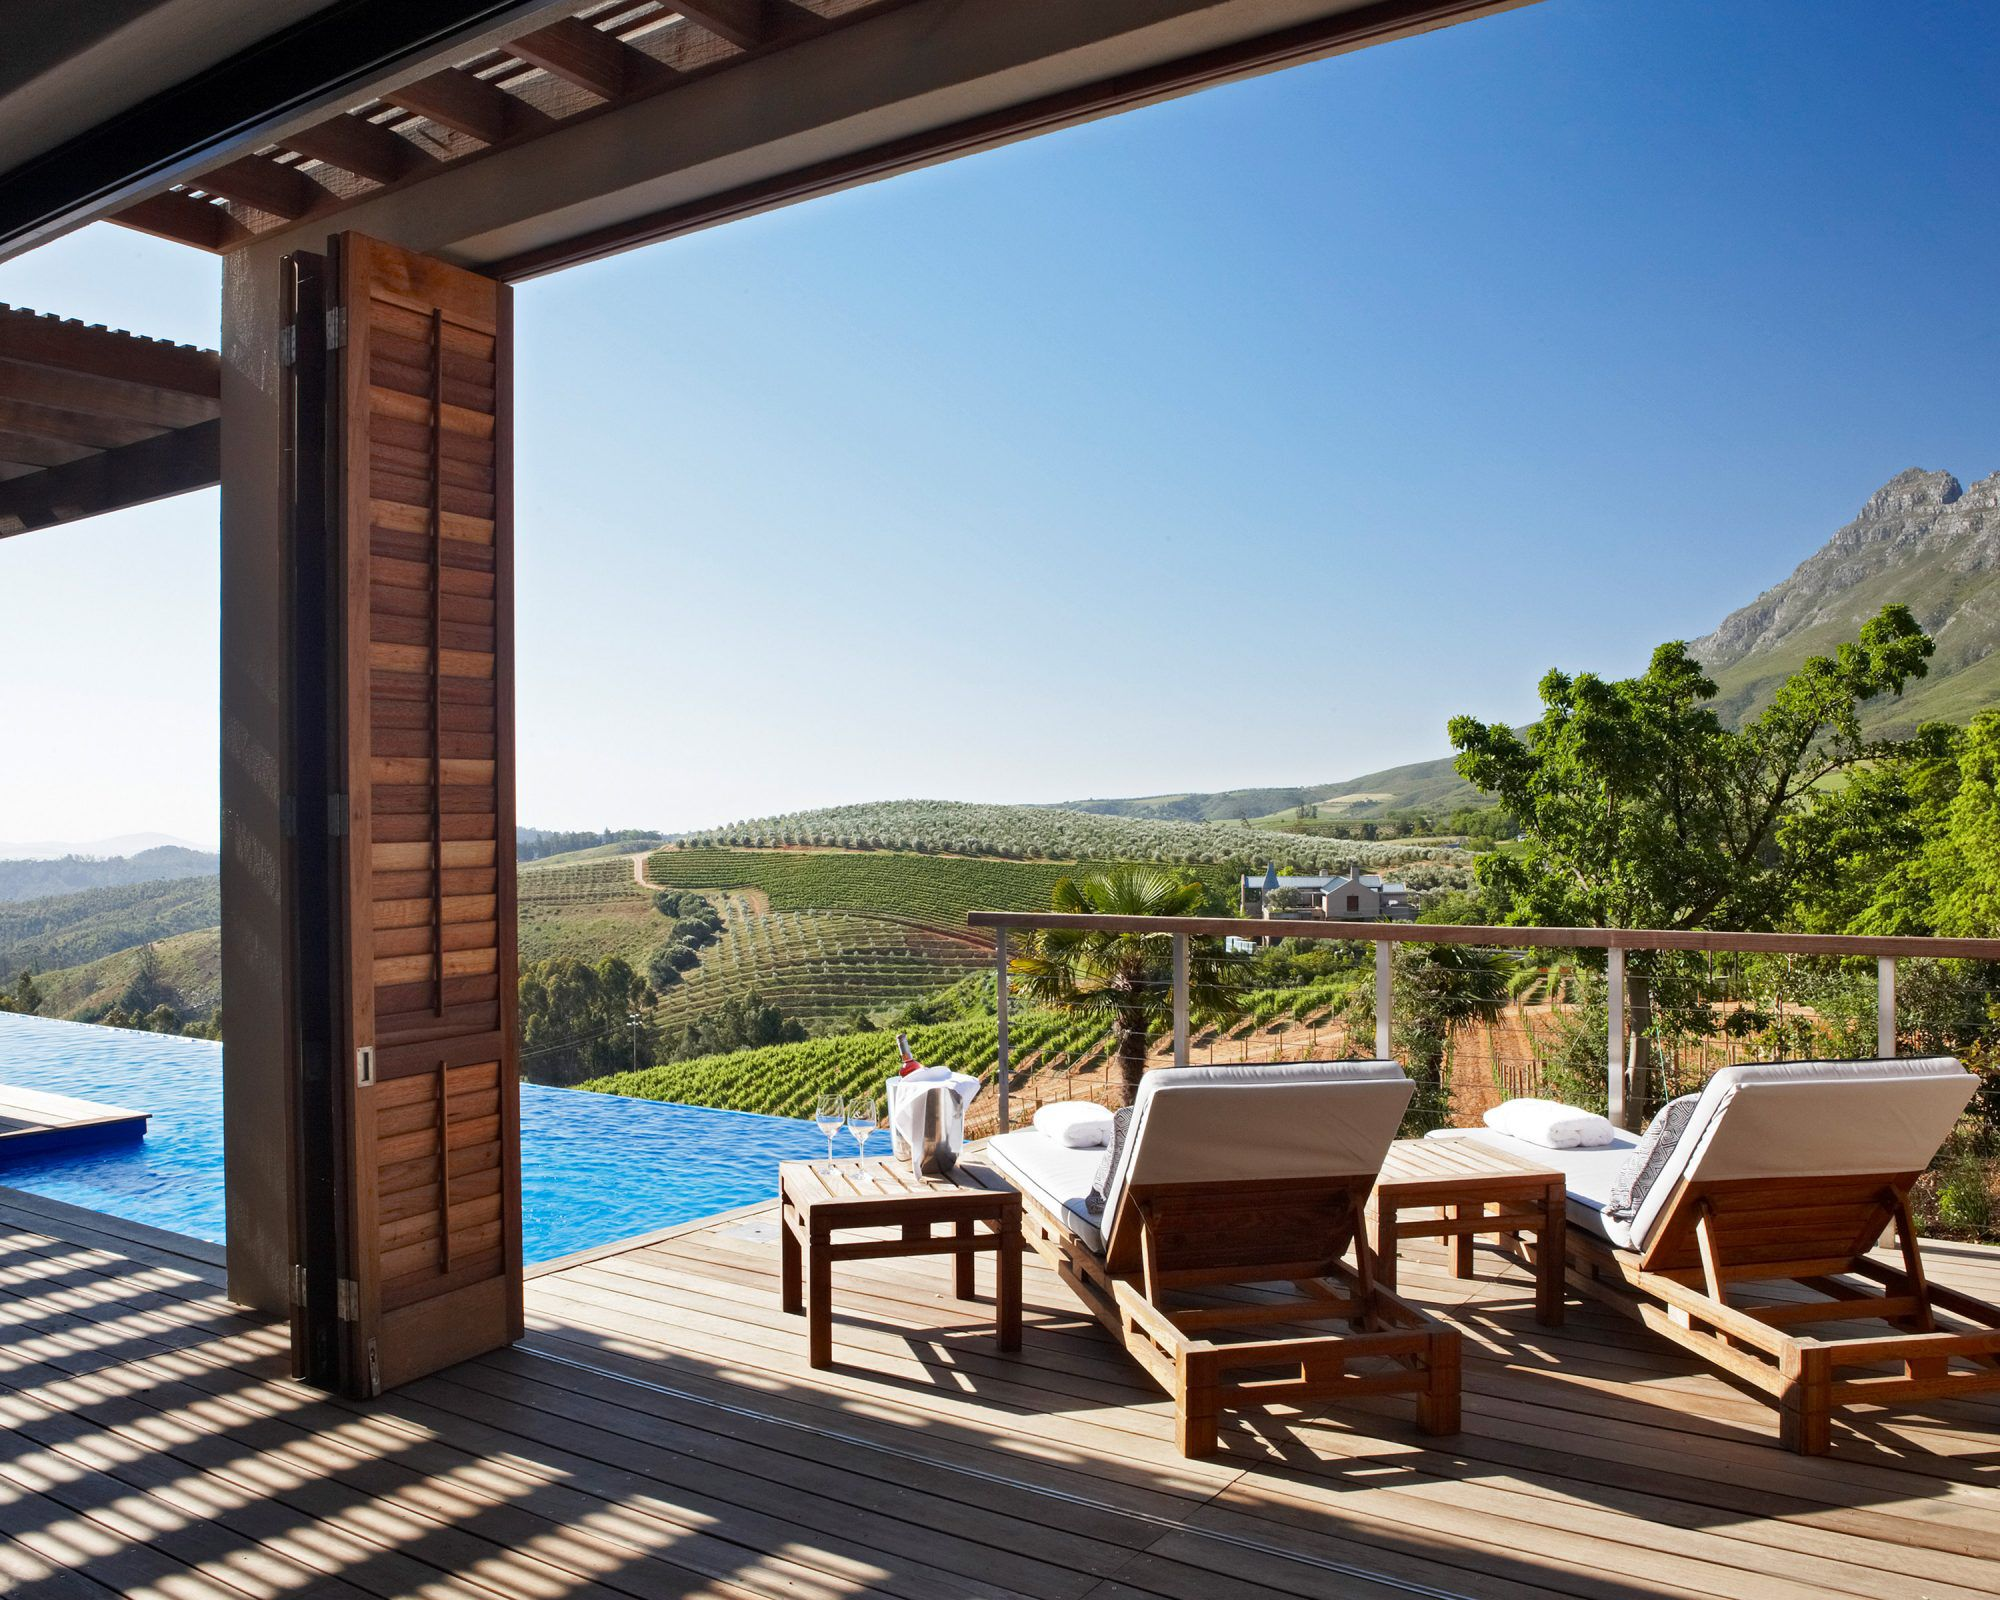 view from one of the lodges in the Delaire Graff Estate in South Africa